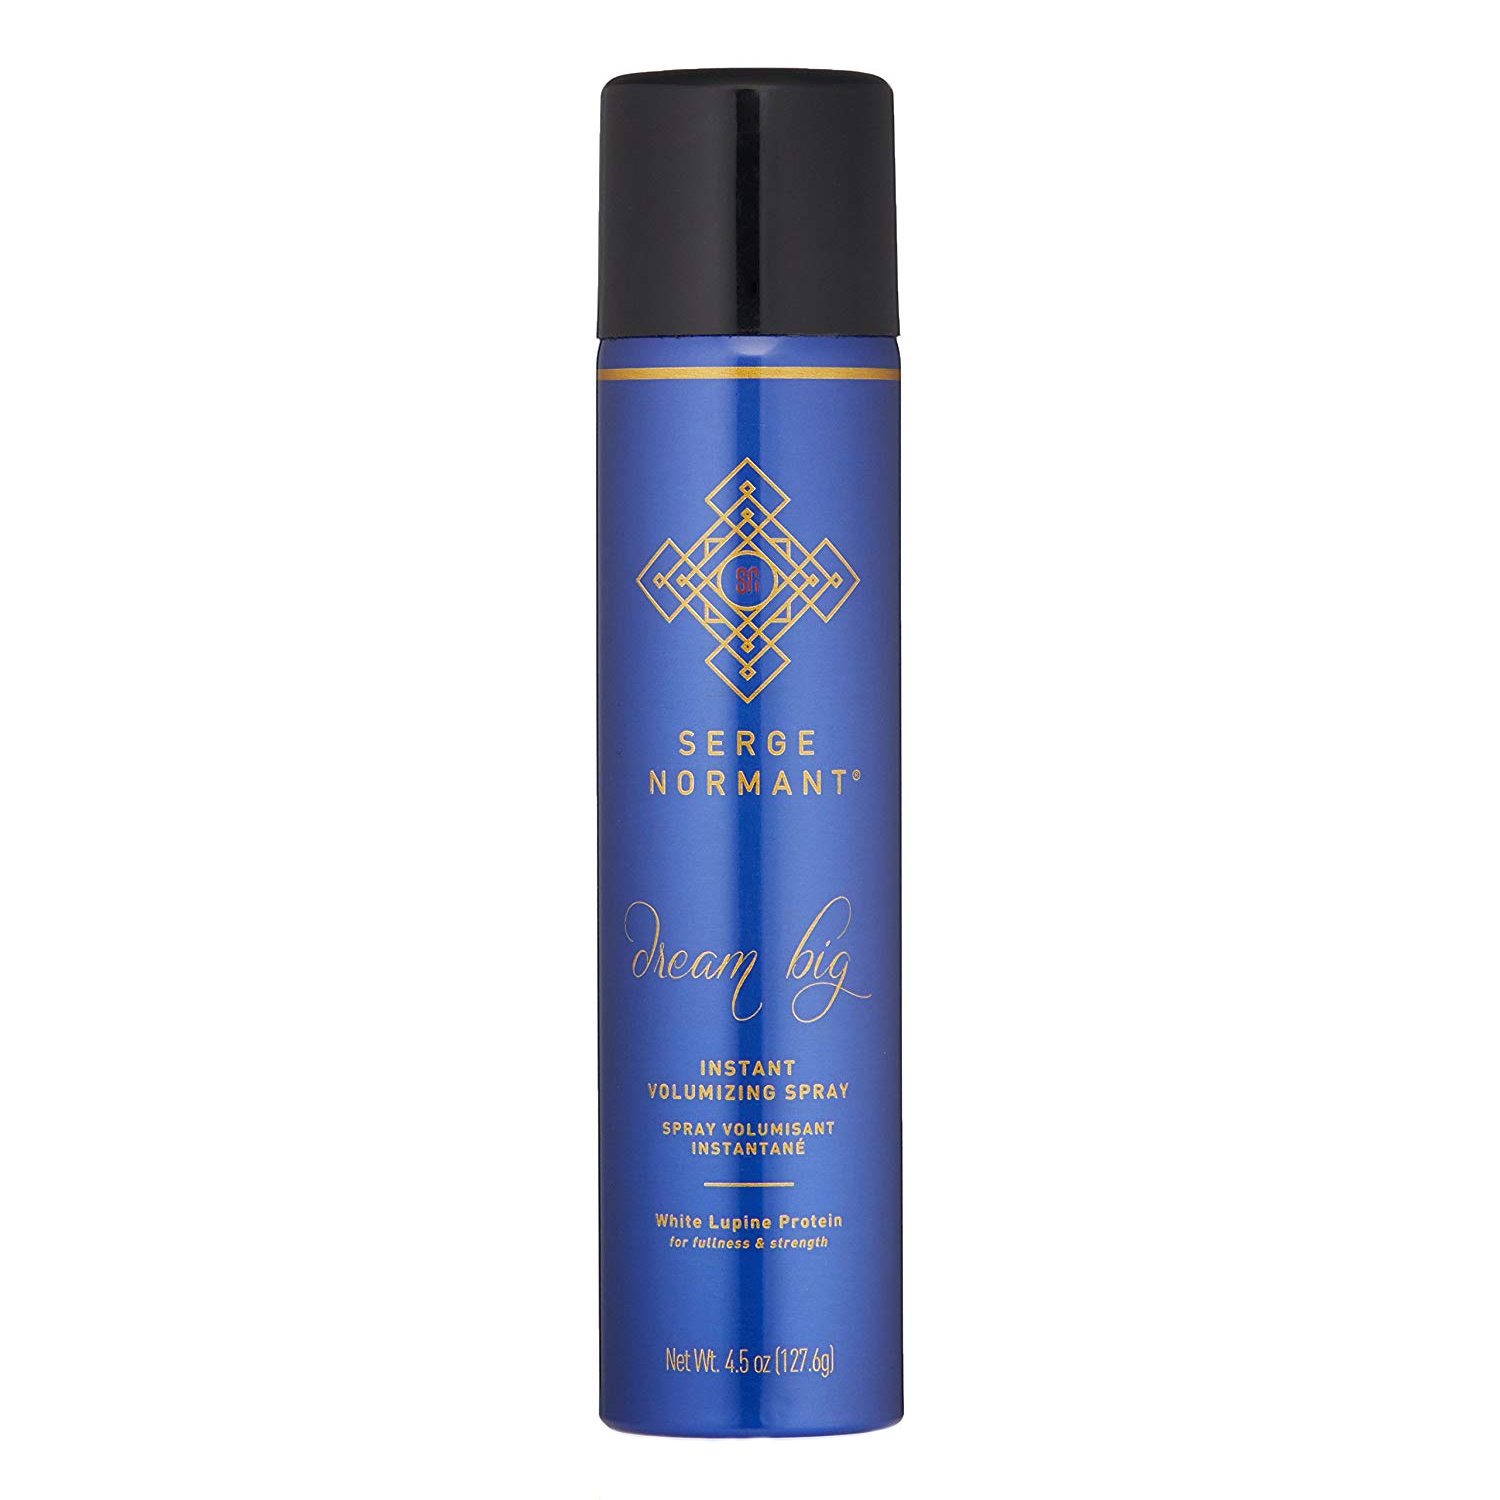 Serge Normant Dream Big Instant Volumizing Spray